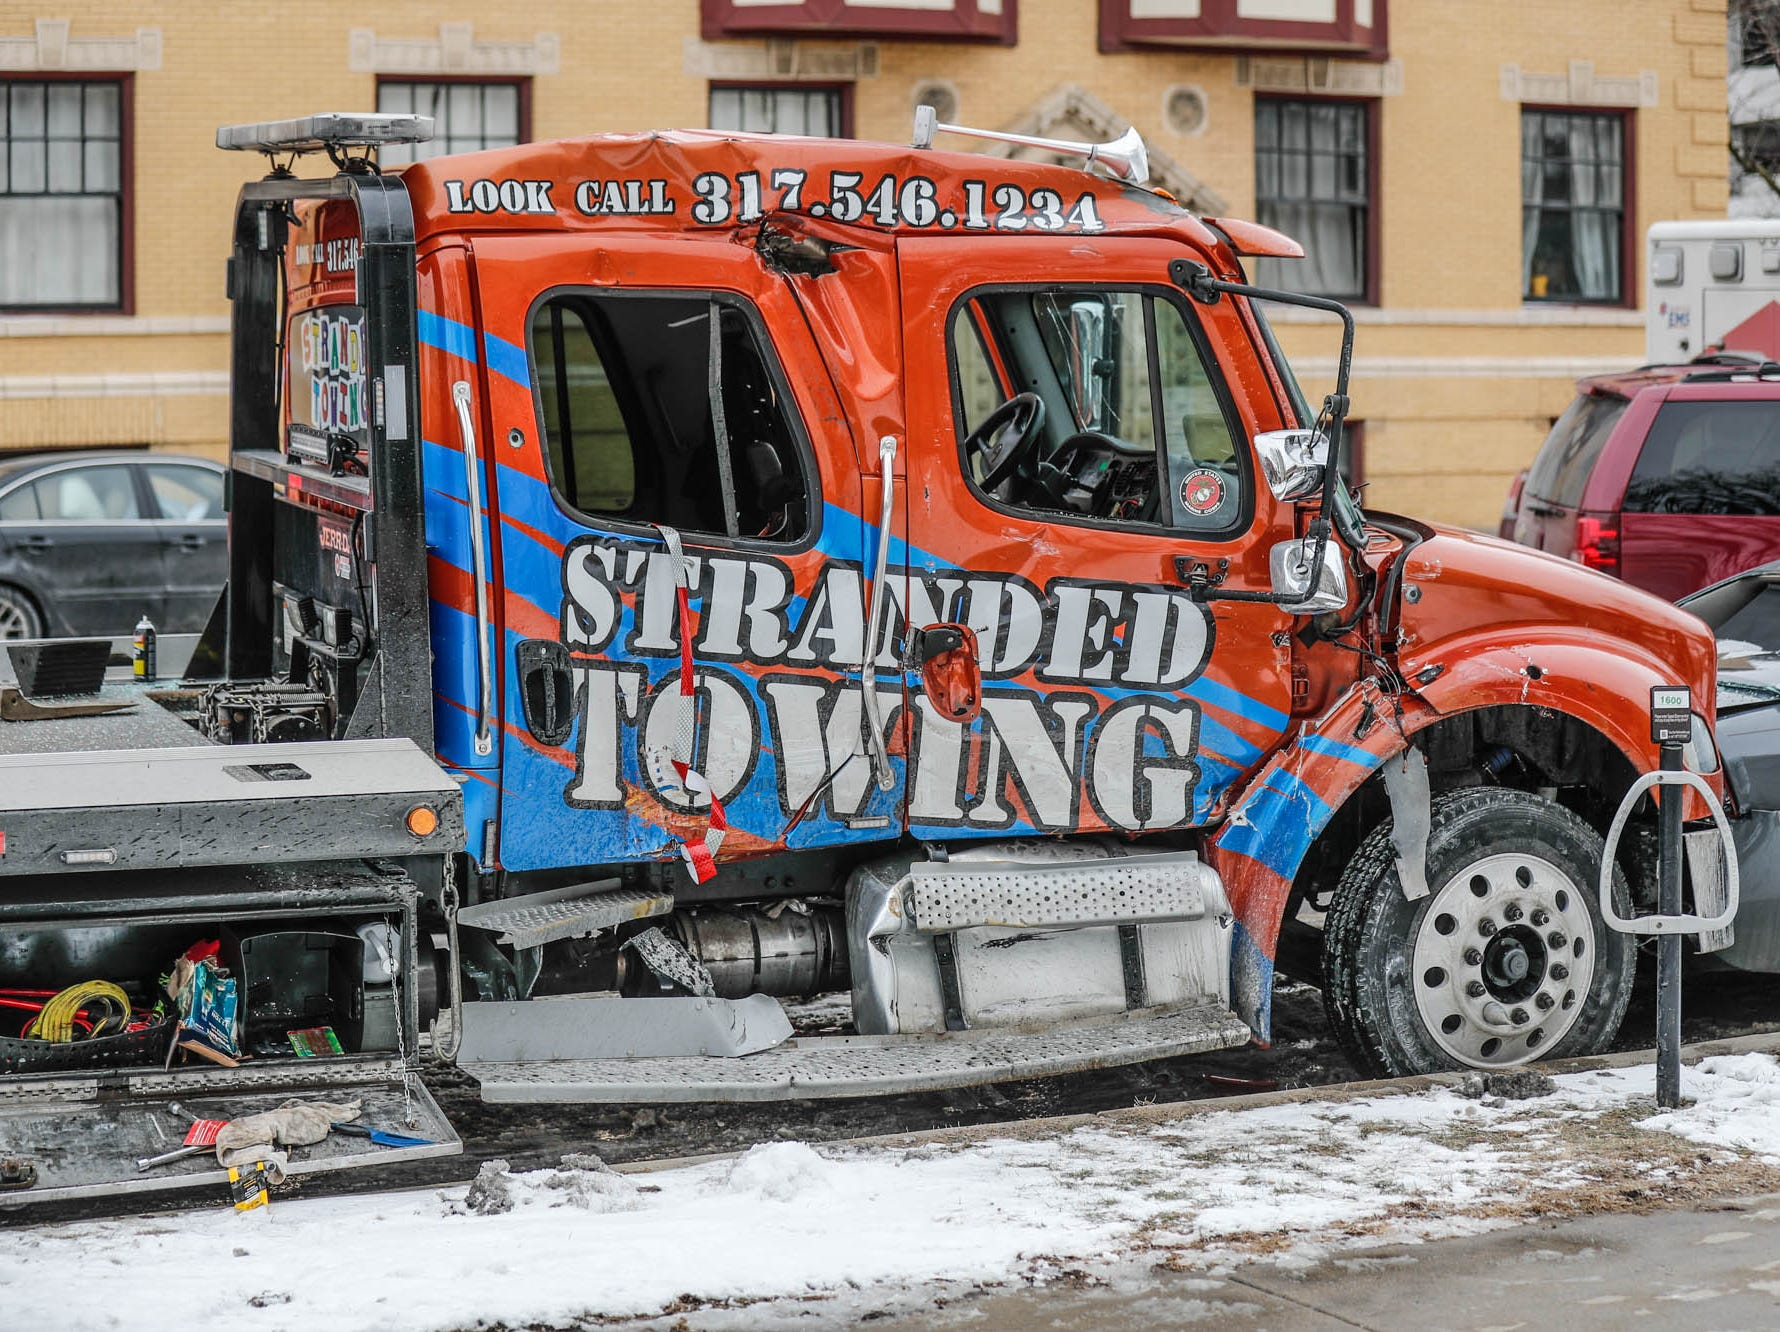 An tow truck collides with parked cars after an M.S.D. of Washington Township Township School Bus collided with the Roberts Park Methodist Church at the corner of Delaware St. and Vermont St. in downtown Indianapolis on Tuesday, Jan. 22, 2019. The bus initially collided with a tow truck after allegedly running a red light, causing the bus to collide with the church and the tow truck to strike parked vehicles along Delaware St. The bus driver and others were transported by ambulance.